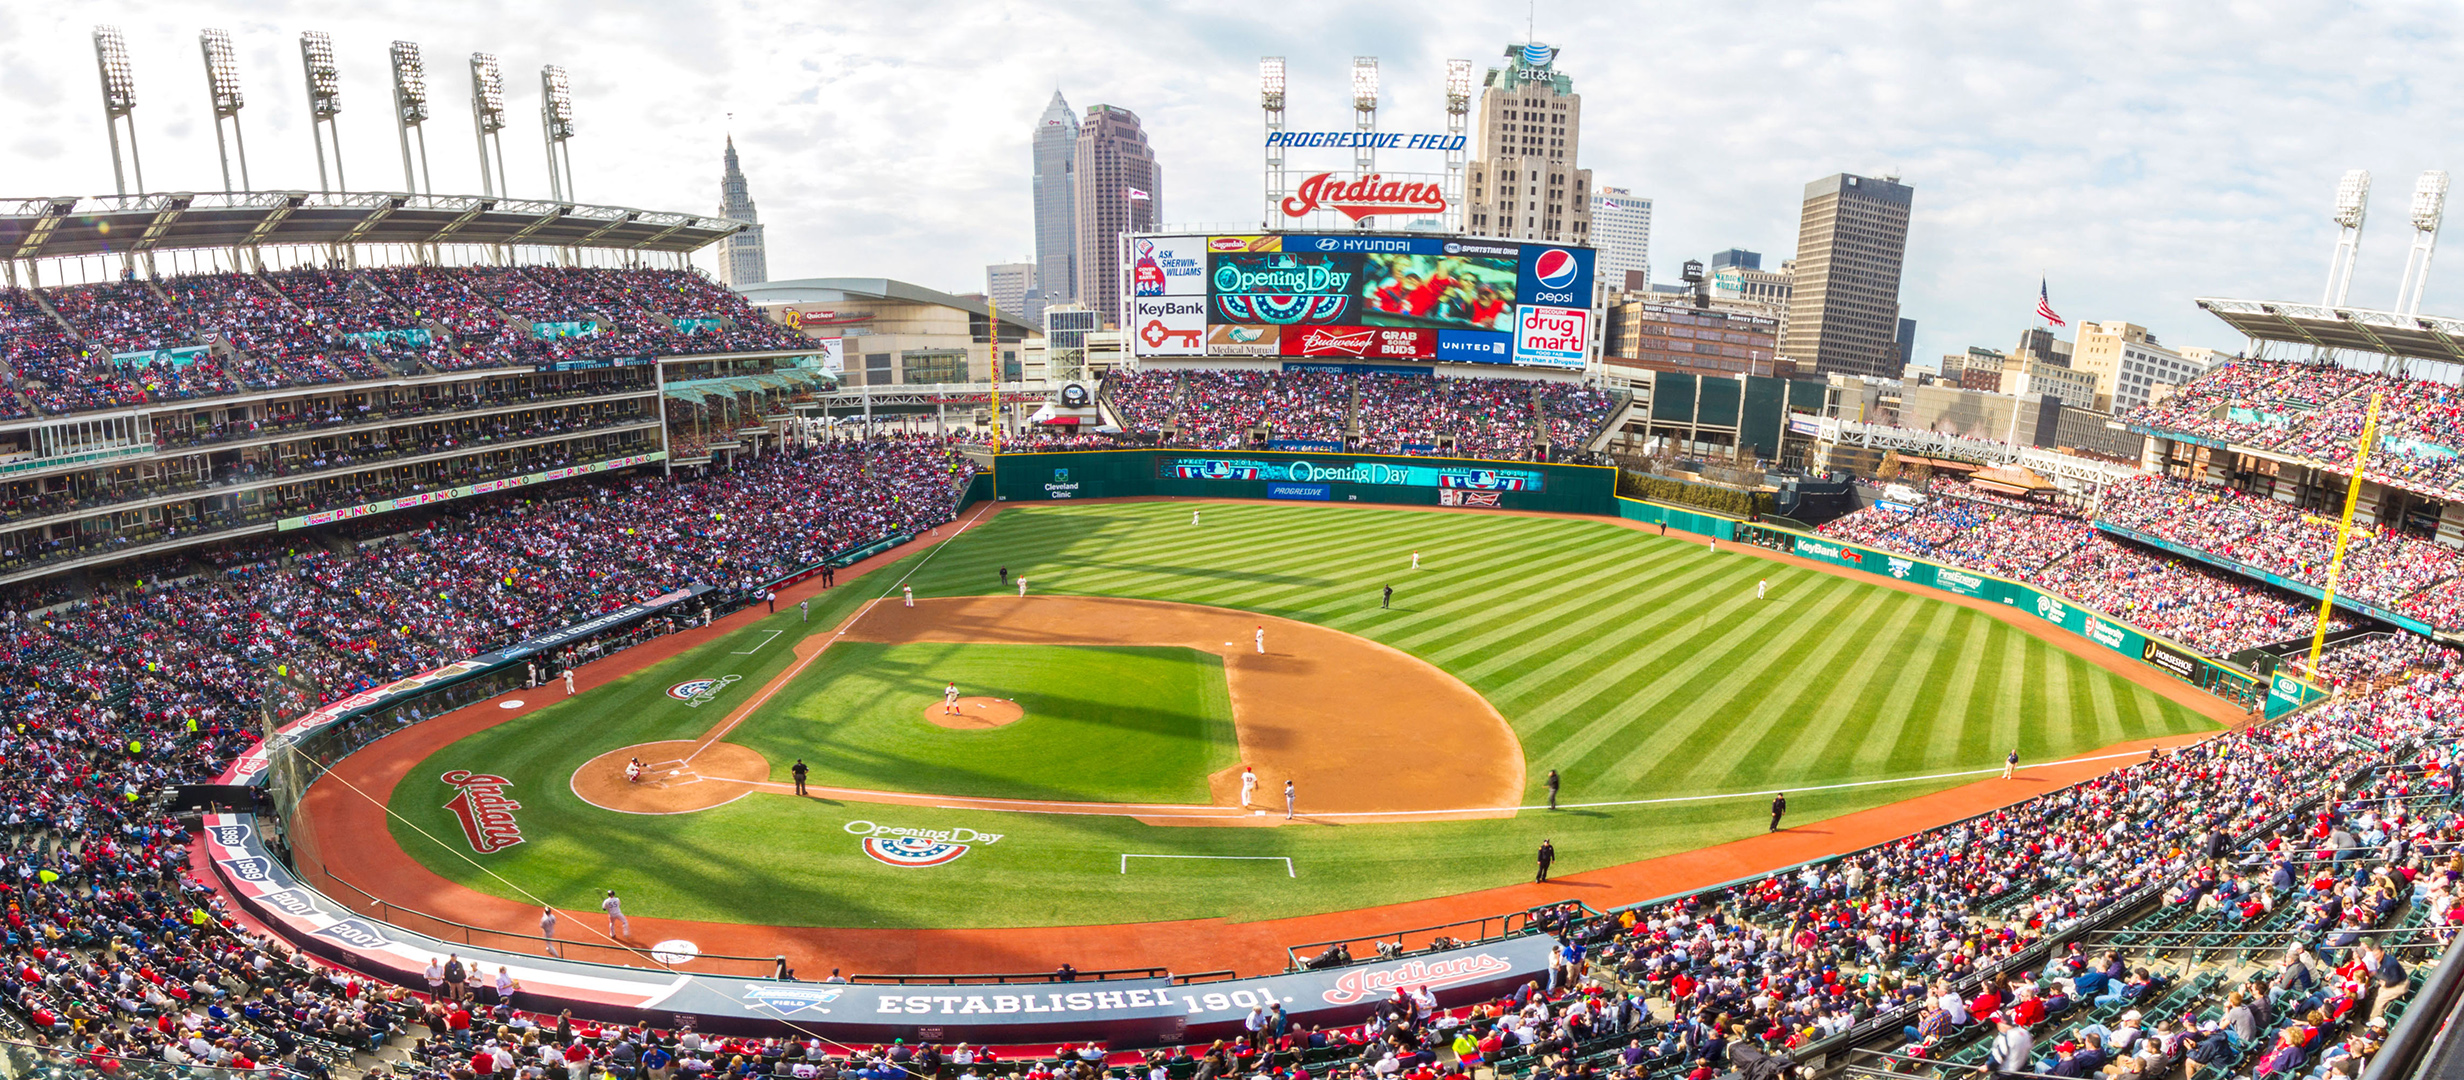 How to Plan a Baseball Stadium Road Trip This Summer